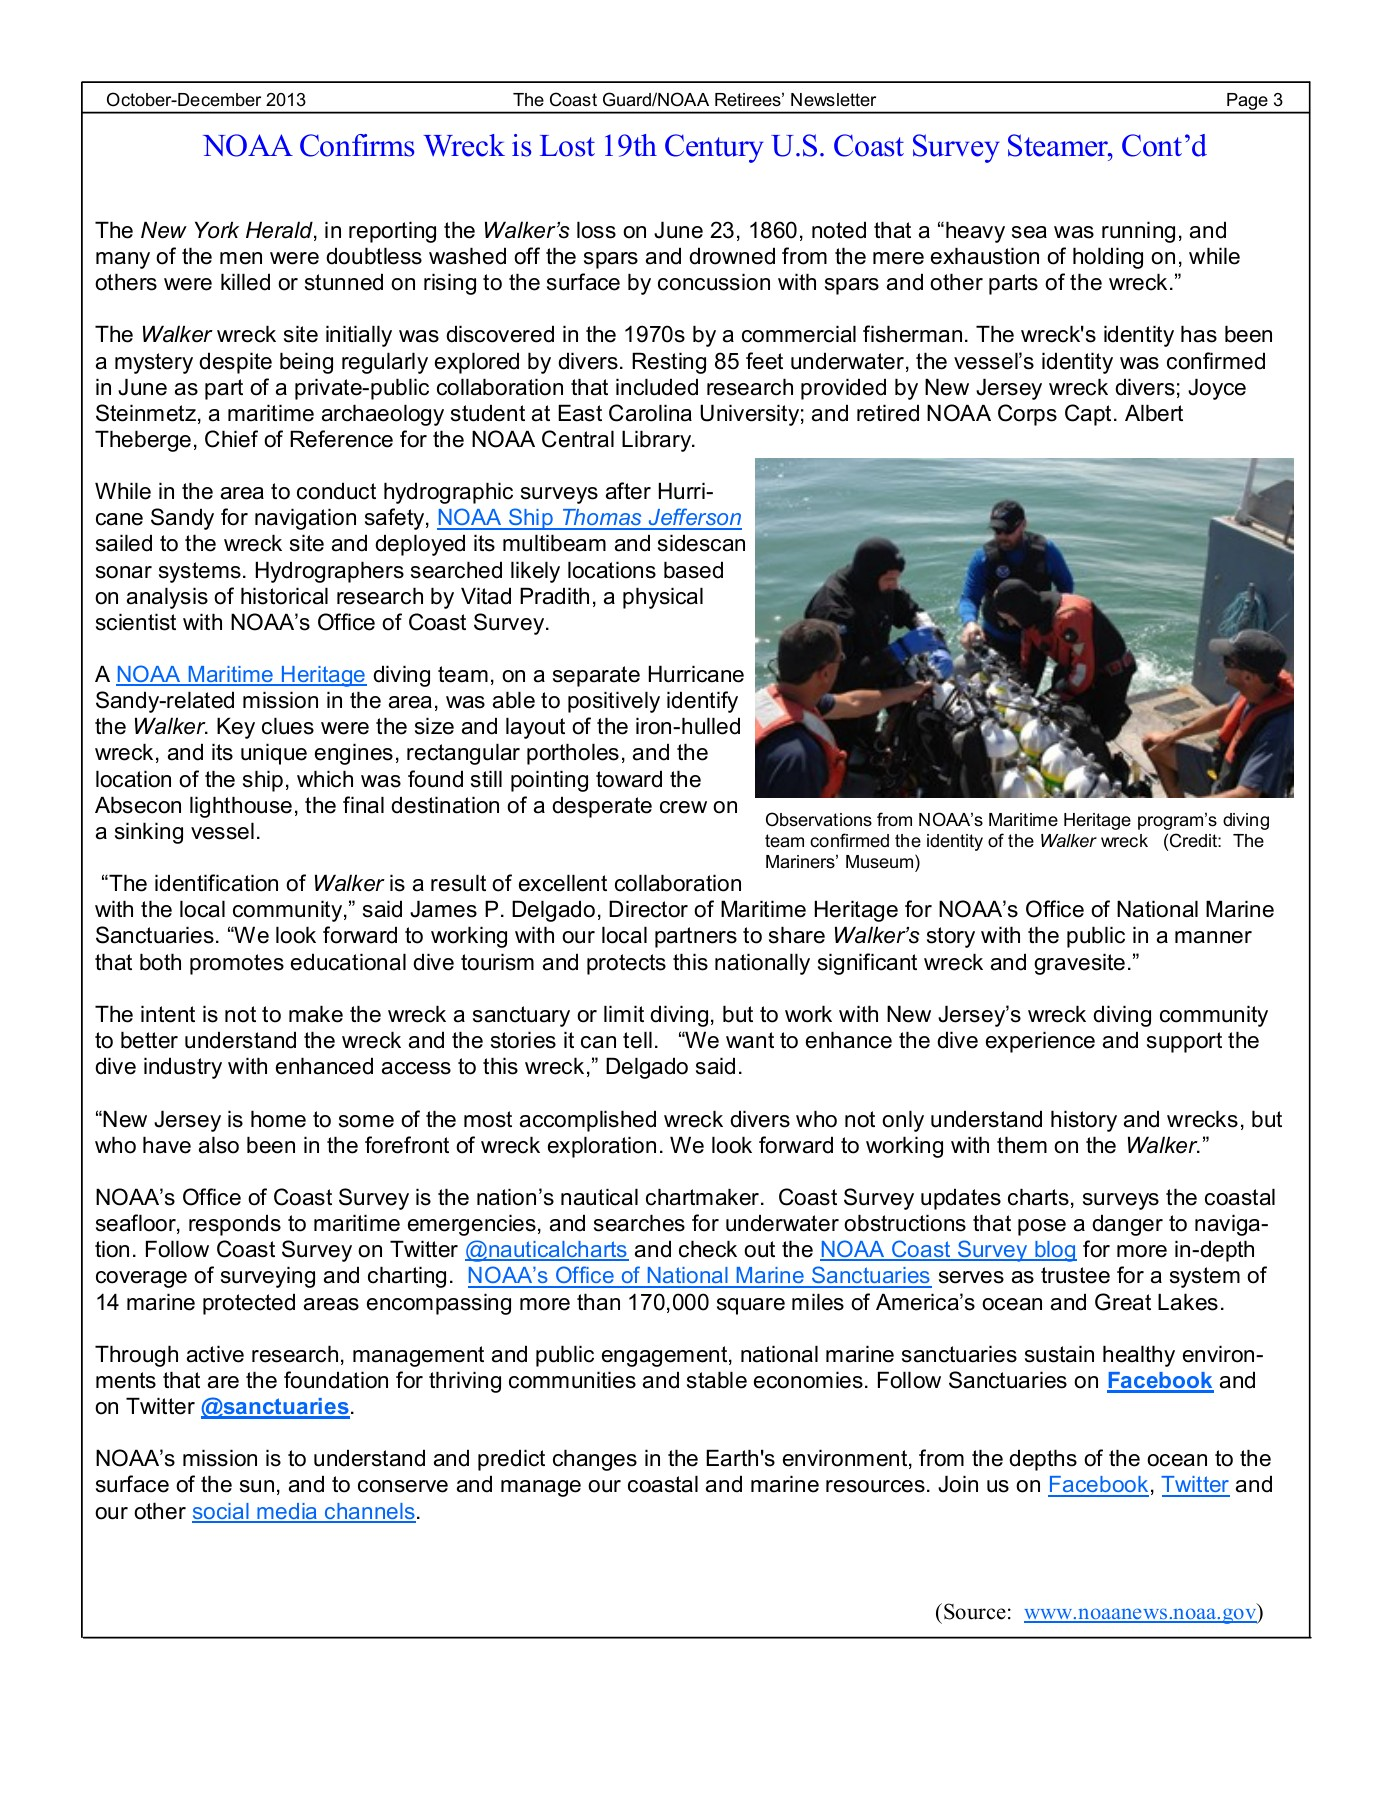 The Coast Guard/NOAA Retirees' Newsletter - USCG Pages 1 - 20 - Text